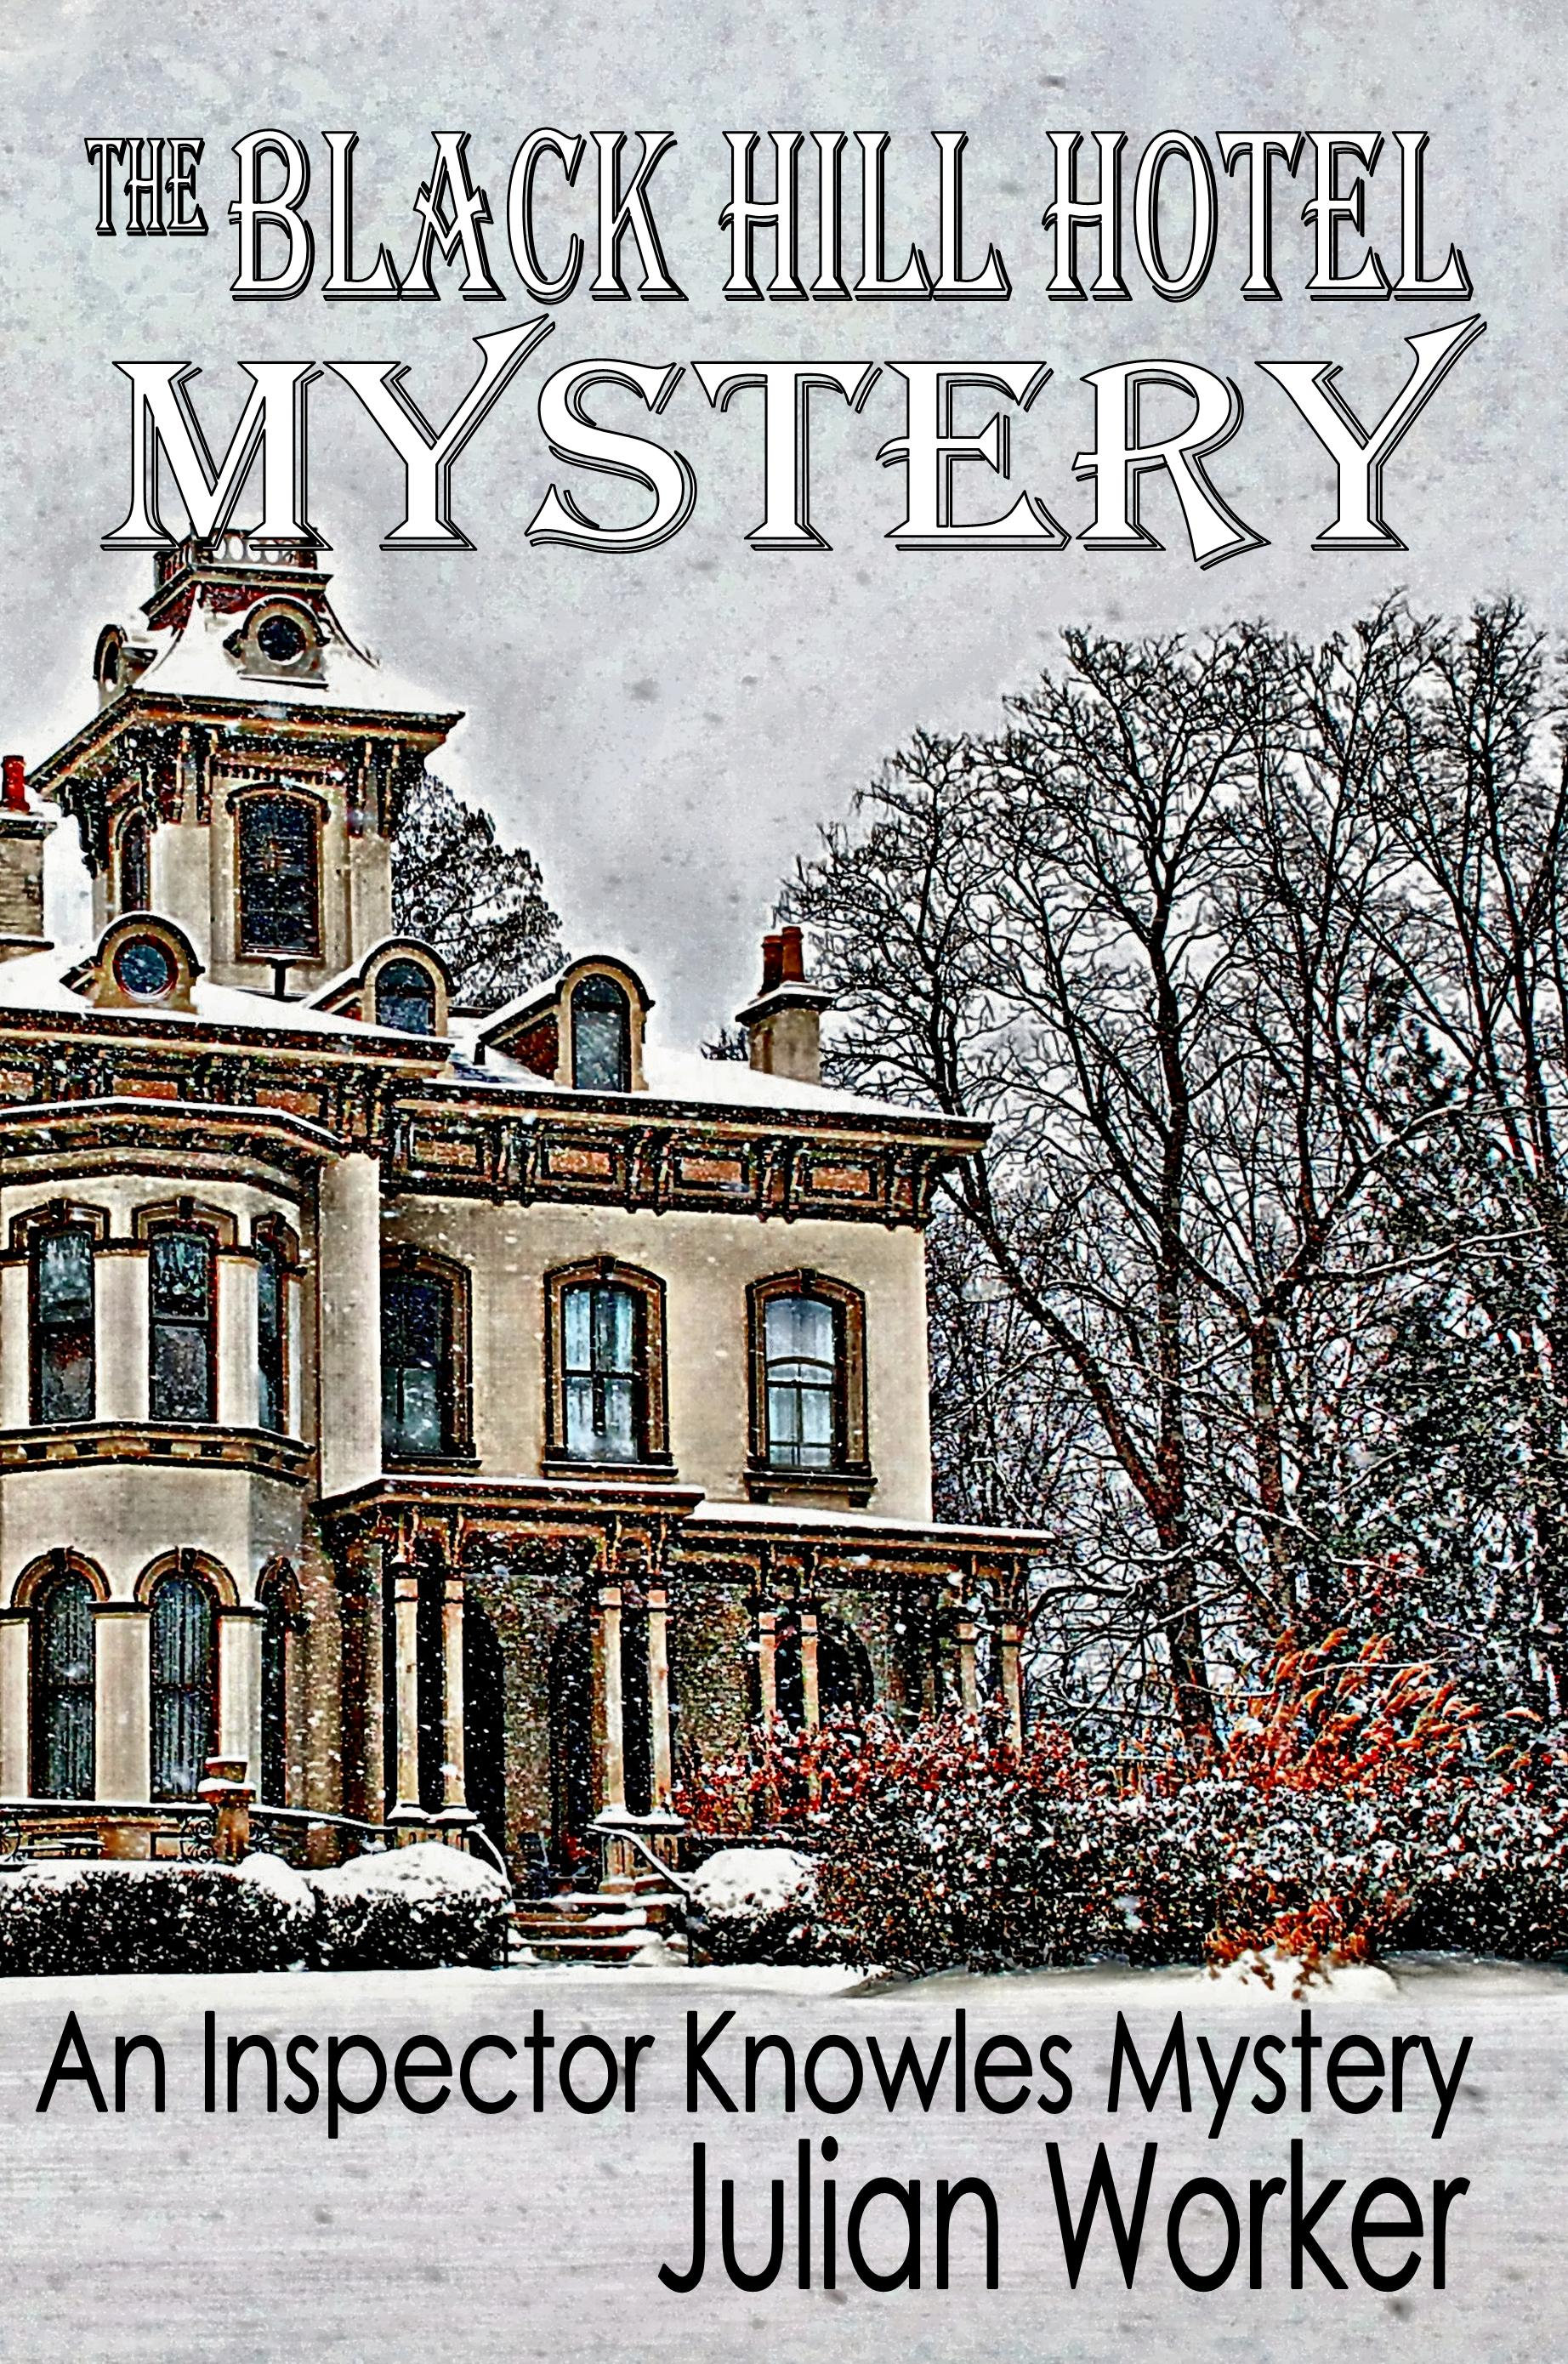 The Black Hill Hotel Mystery – 11